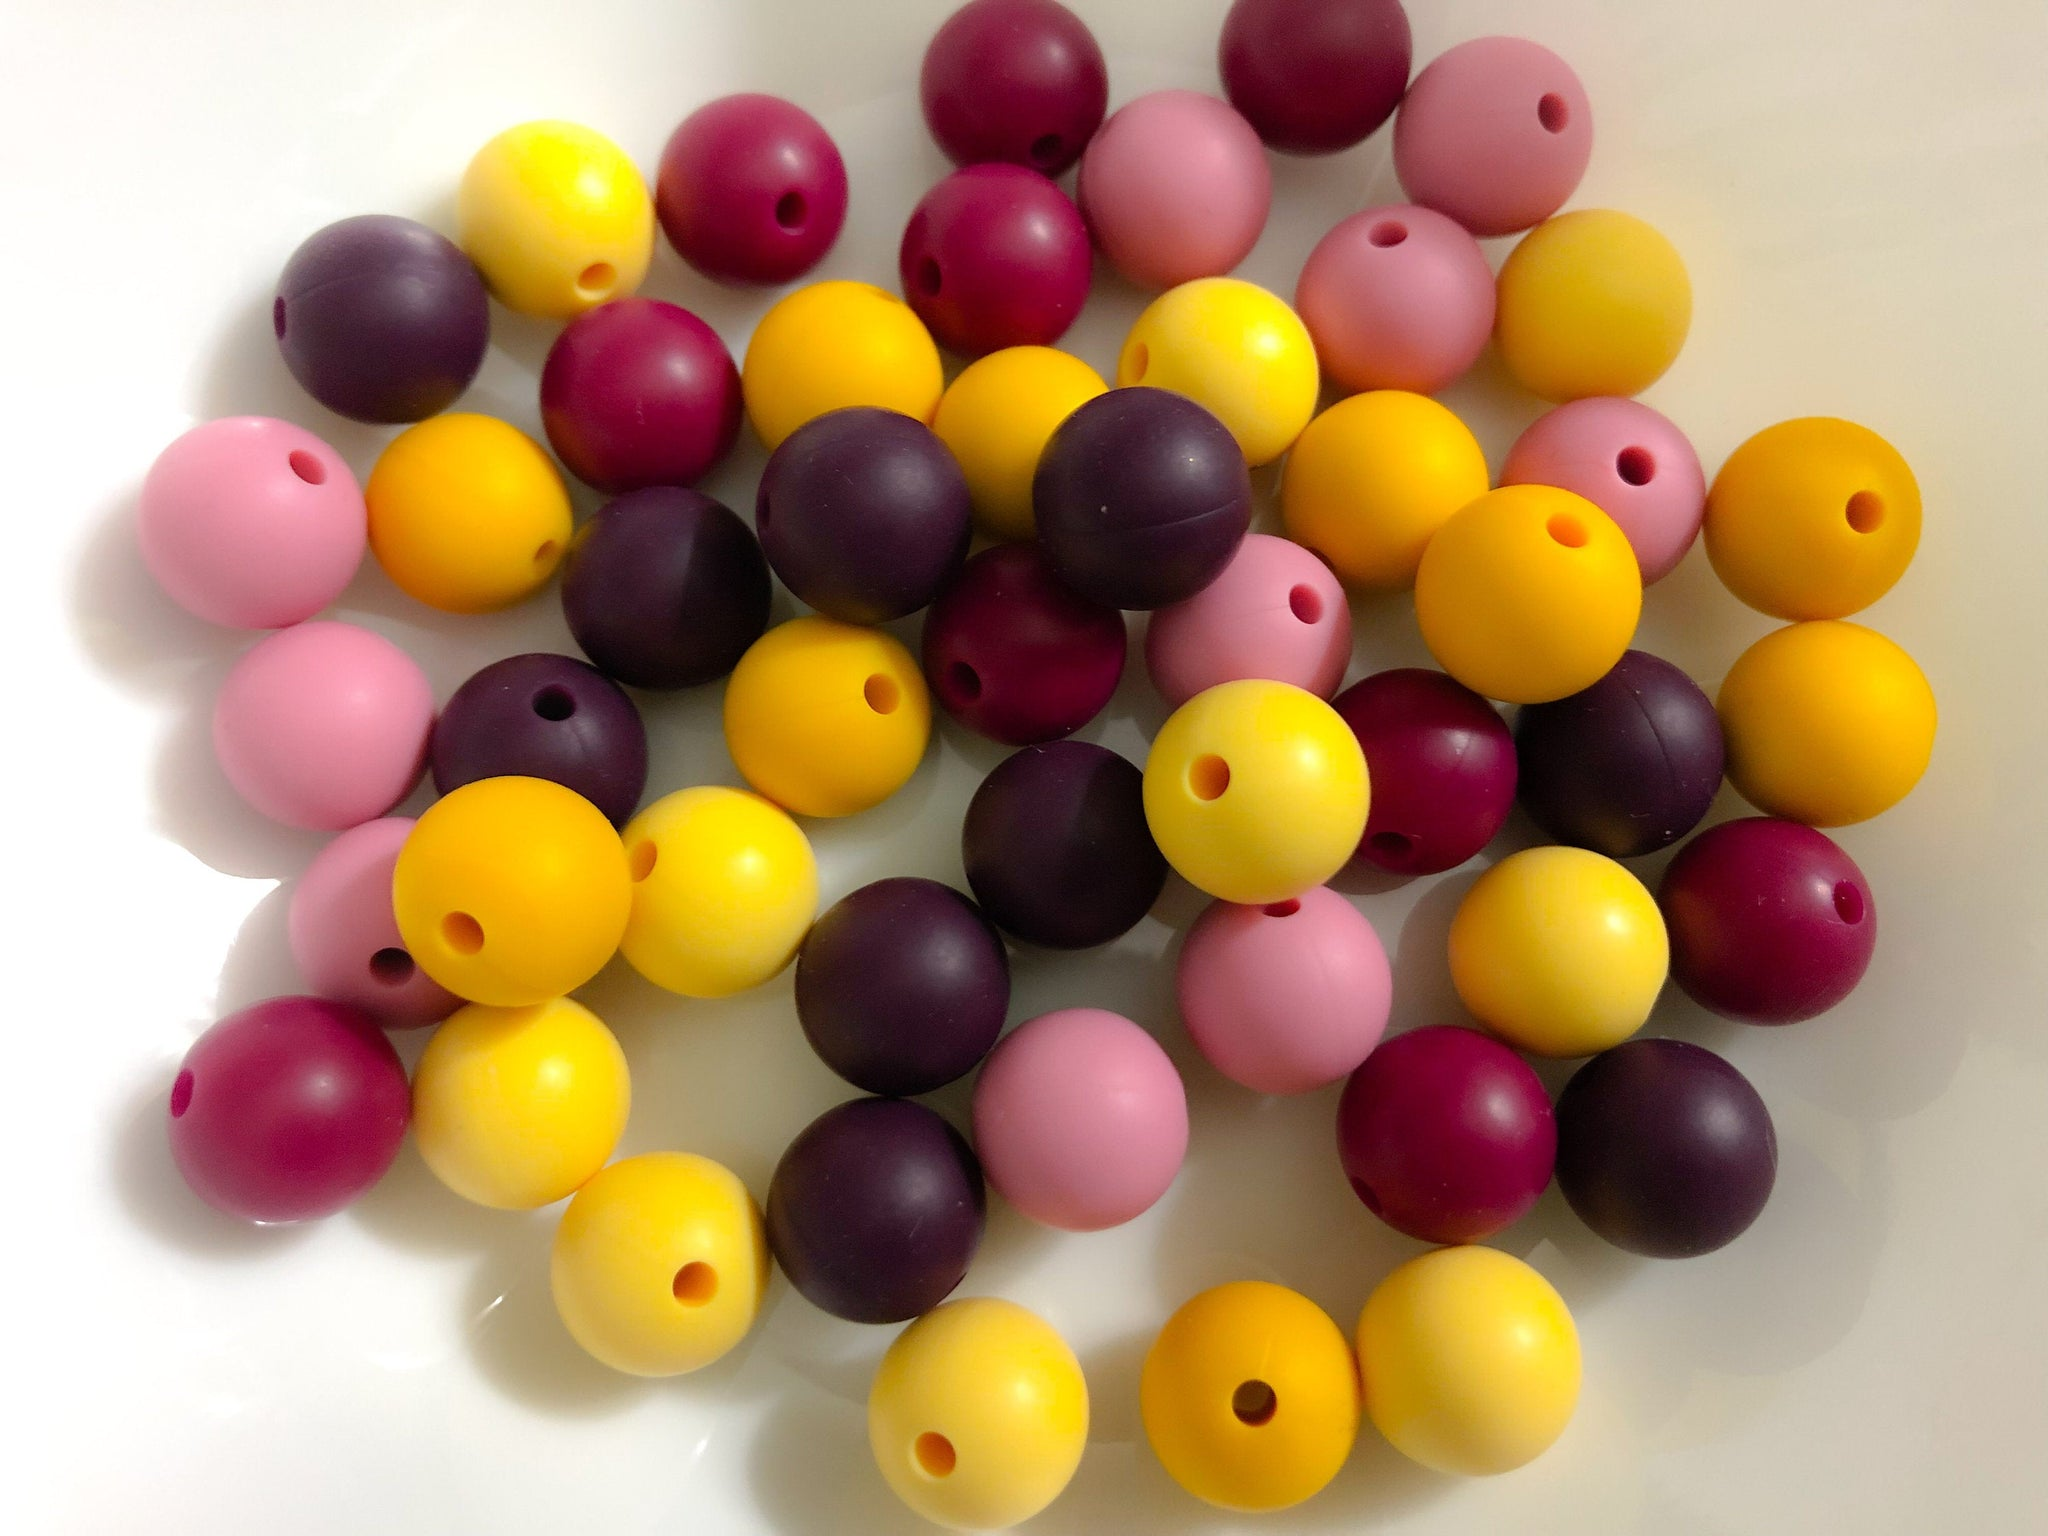 50 Bulk Silicone Teething Beads - Gold Wardrobe - Violet, Merlot, Orchid, Custard, Pencil - Bulk Silicone Beads Wholesale